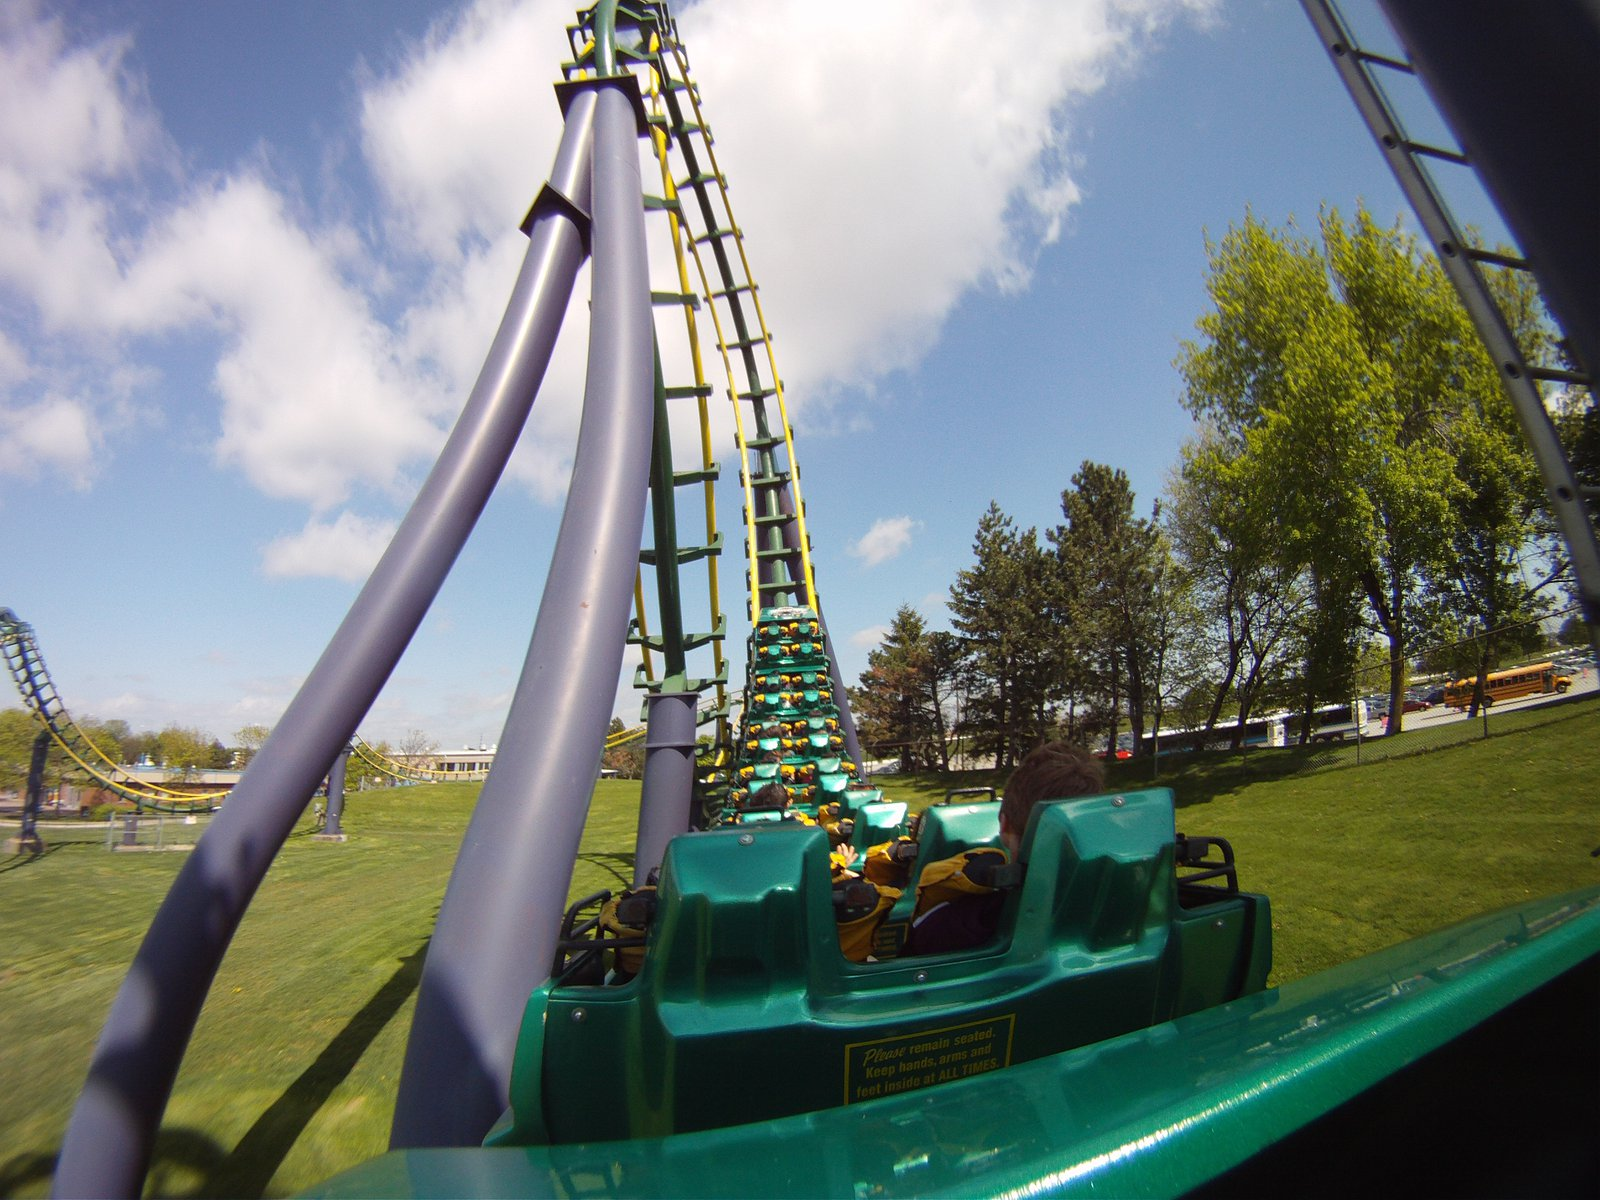 Dragon Fire, on ride